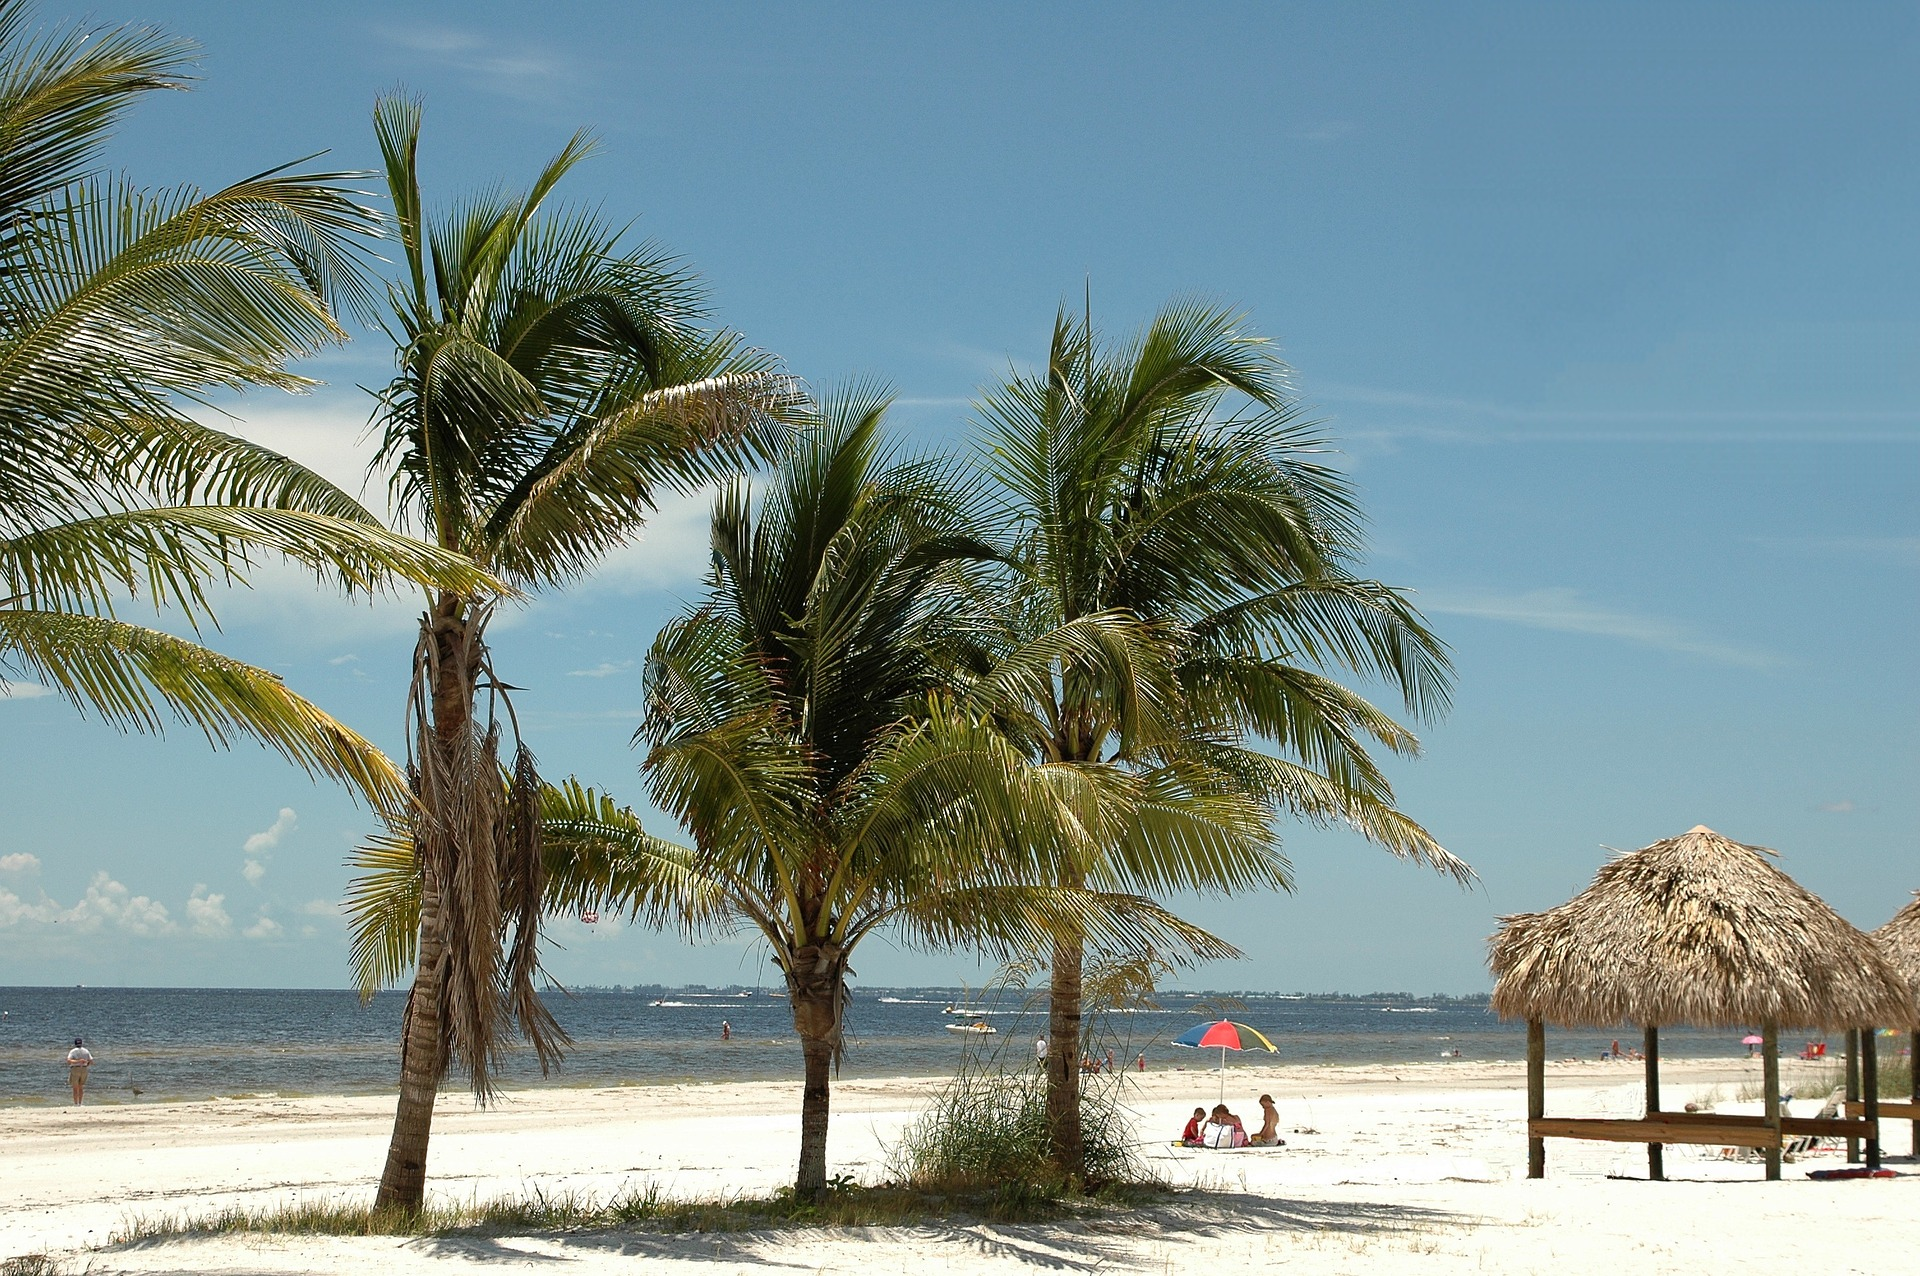 Palm trees sway in the wind on a silky white sand beach.